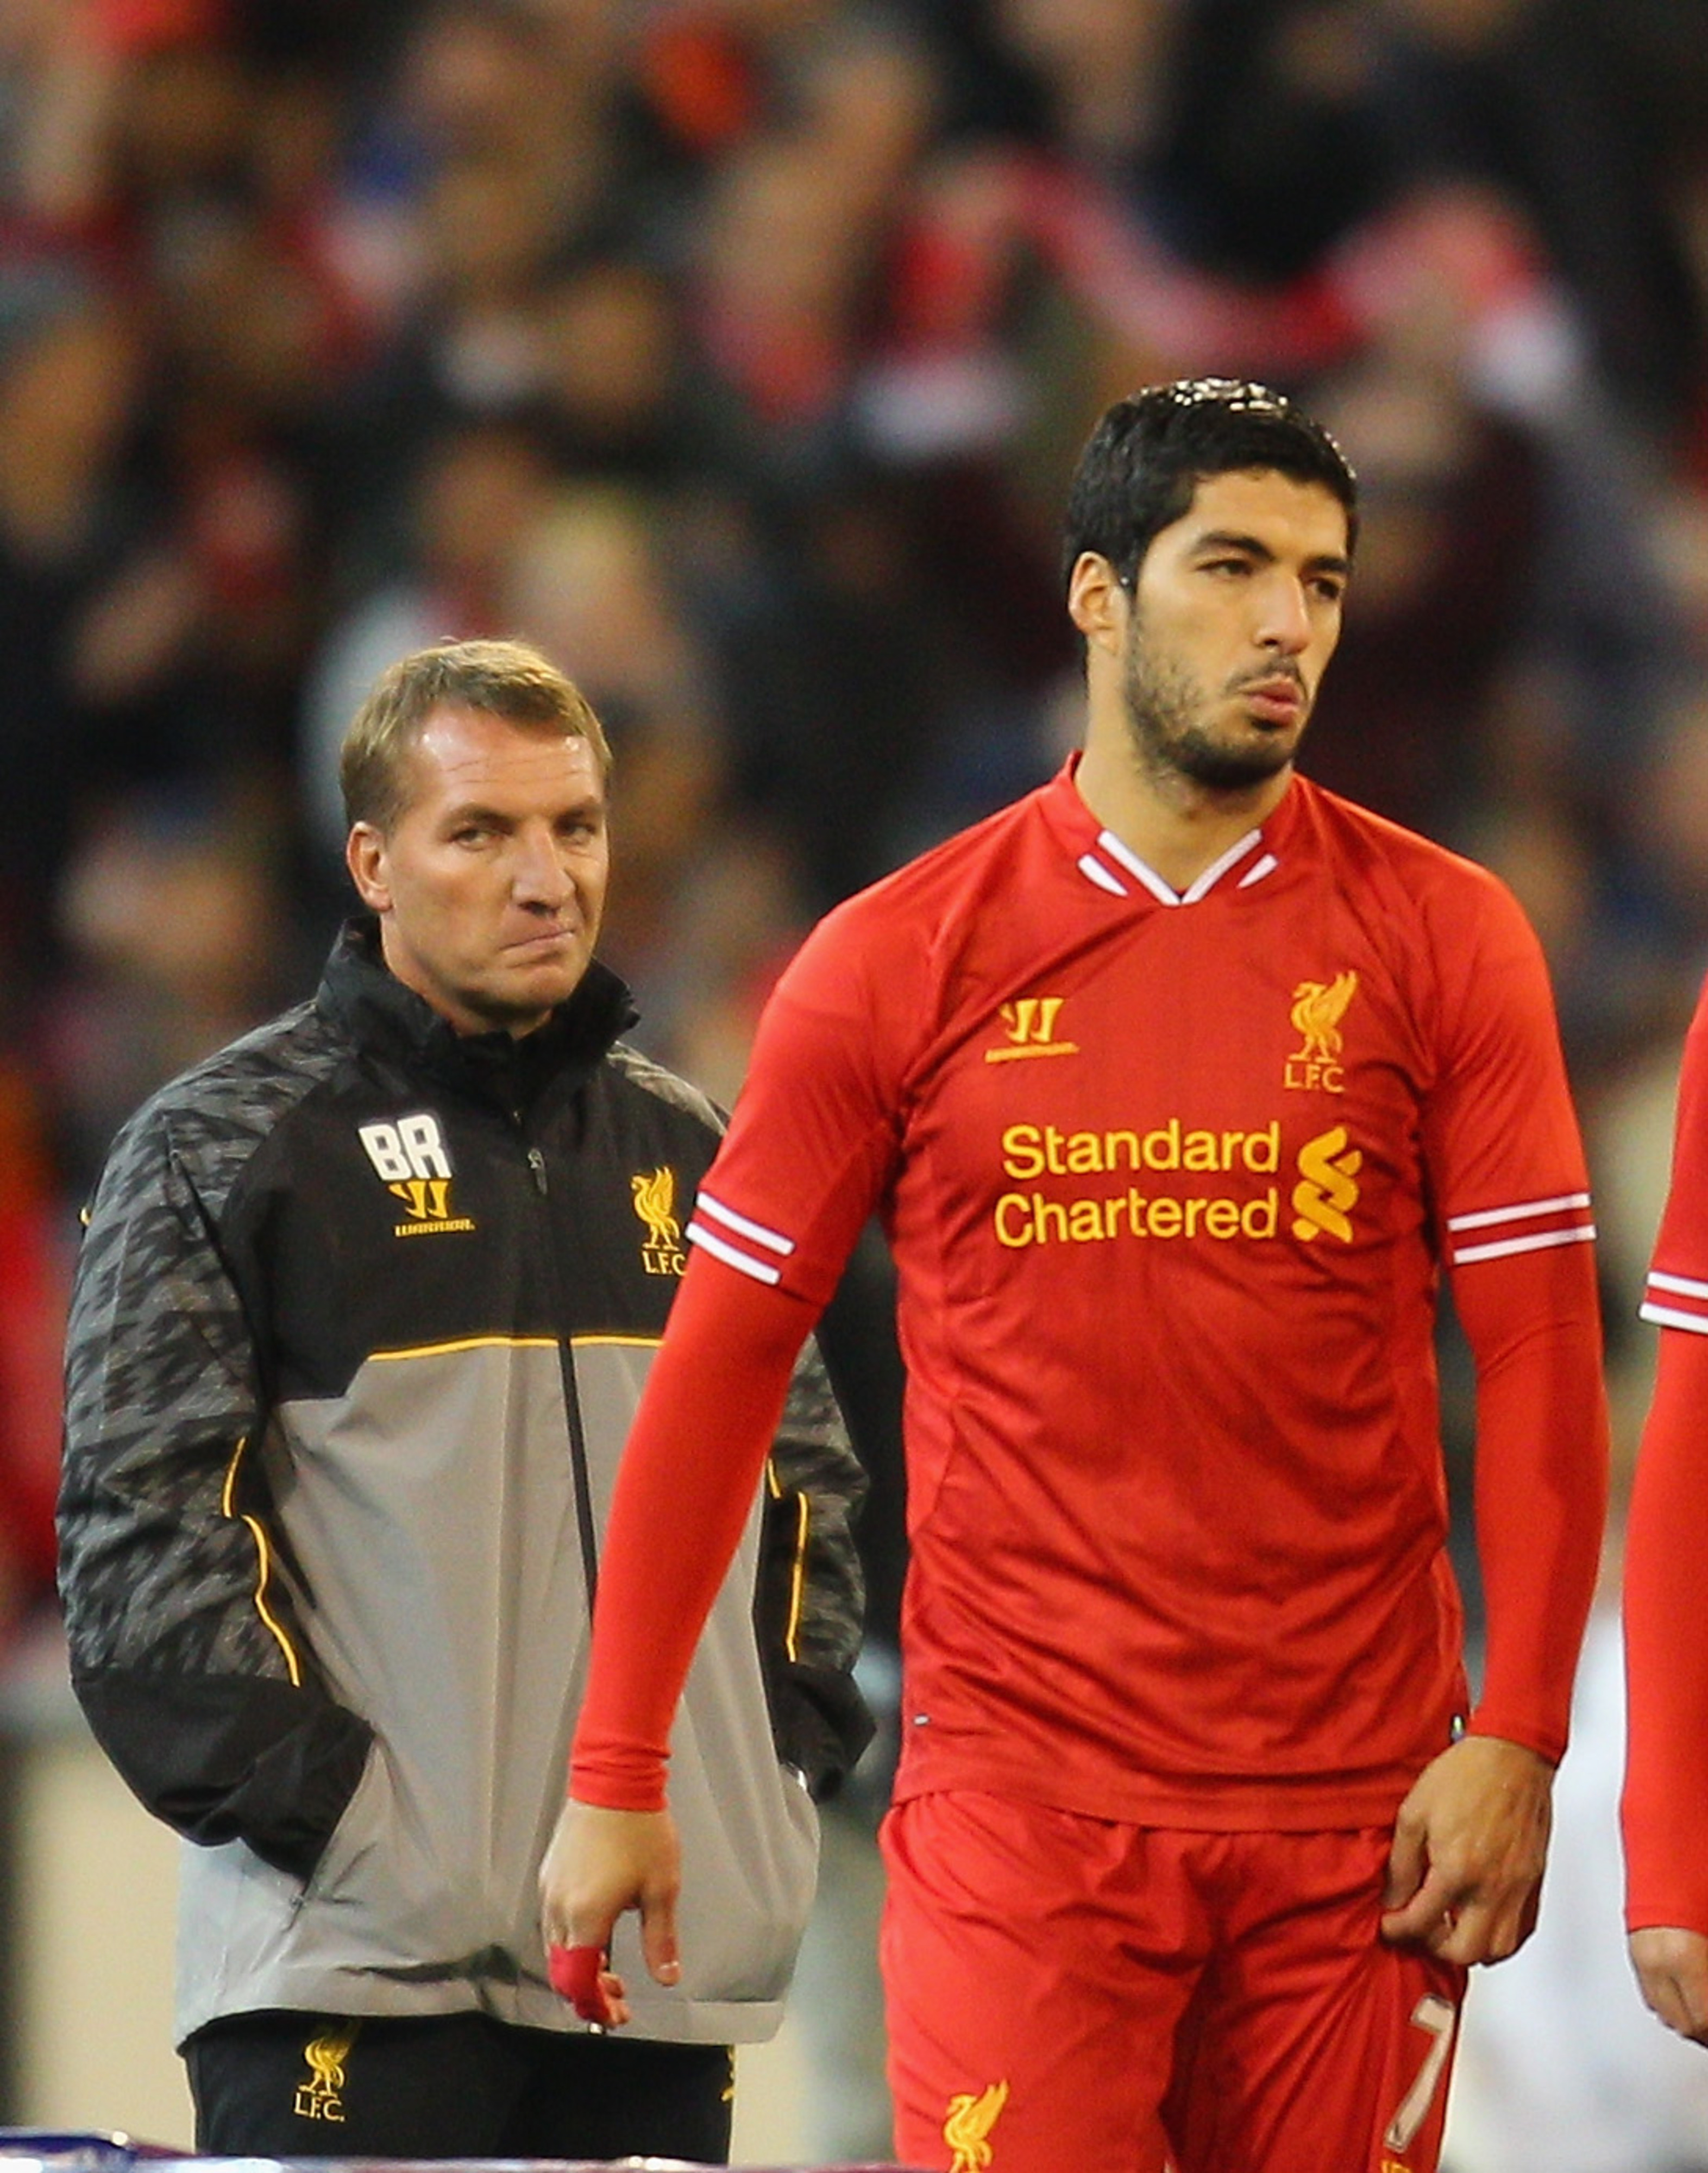 Liverpool can replicate Luis Suarez's qualities but can't replace his quality